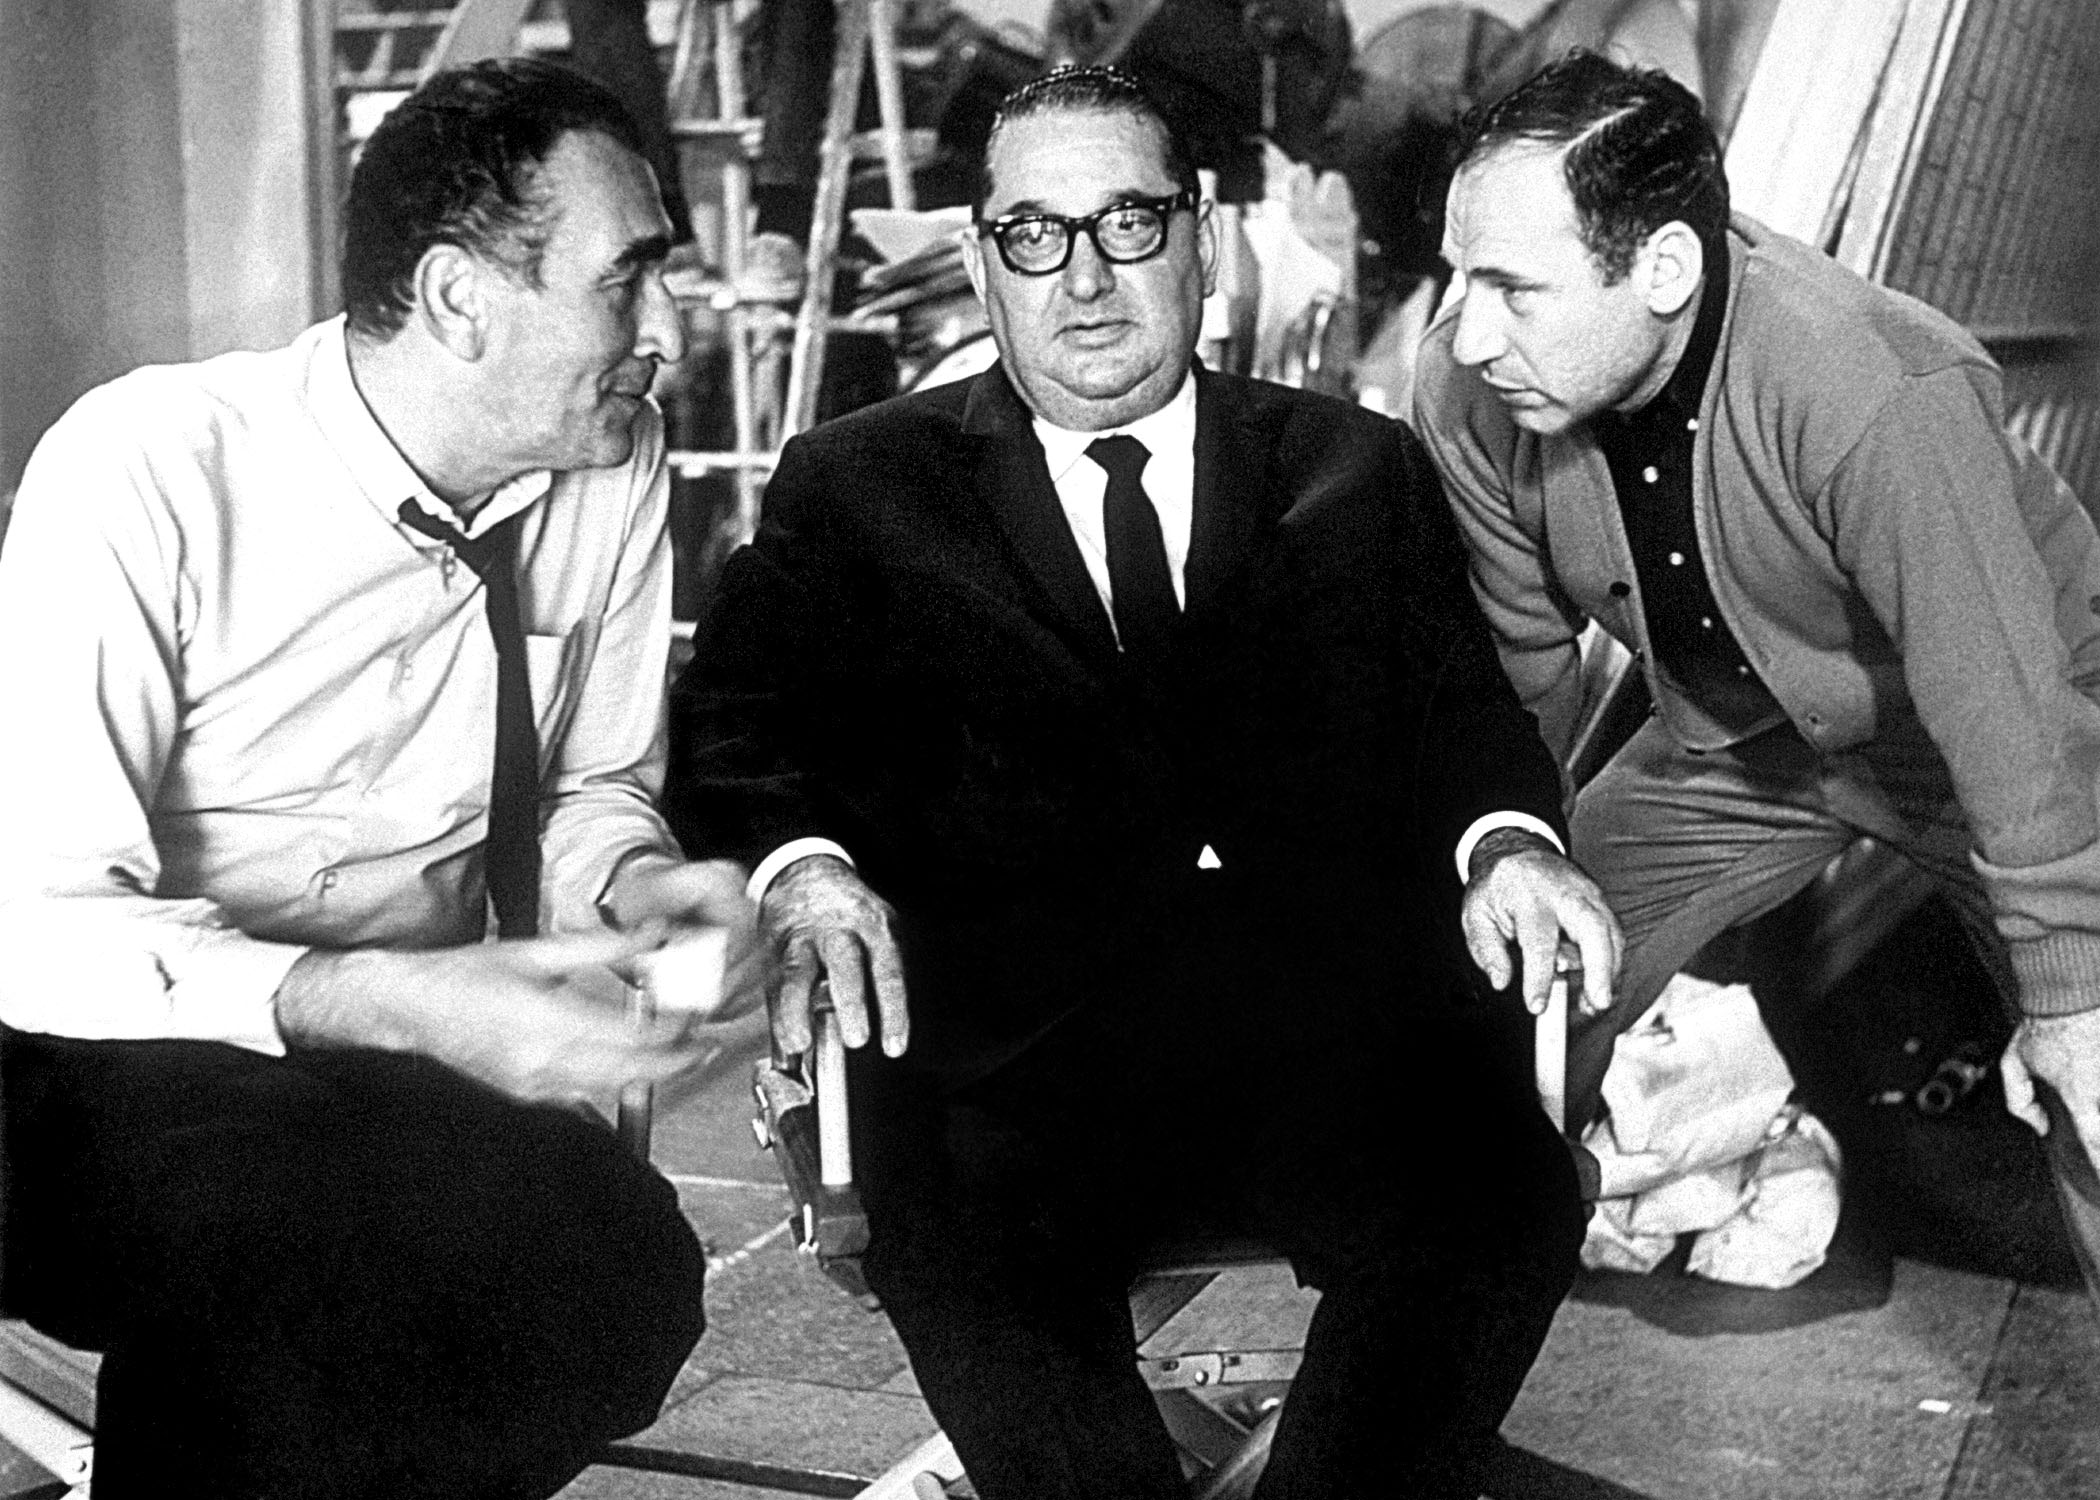 THE PRODUCERS, producer Sidney Glazier, executive producer Joseph E. Levine, director Mel Brooks on set, 1968